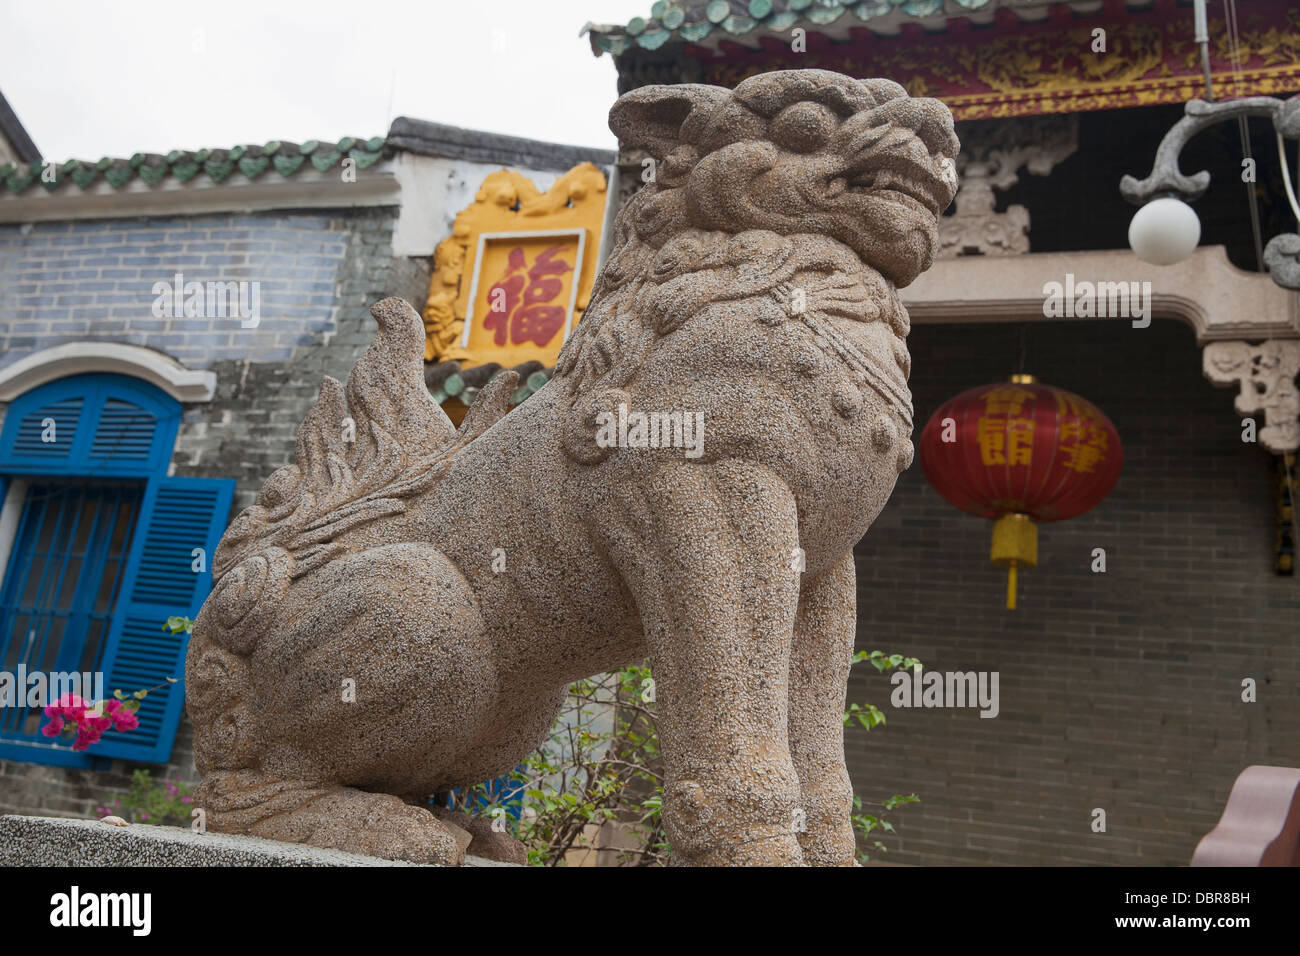 Dragon-like sculpture on grounds of Quang Trieu Assembly Hall, Hoi An, Vietnam, Southeast Asia - Stock Image